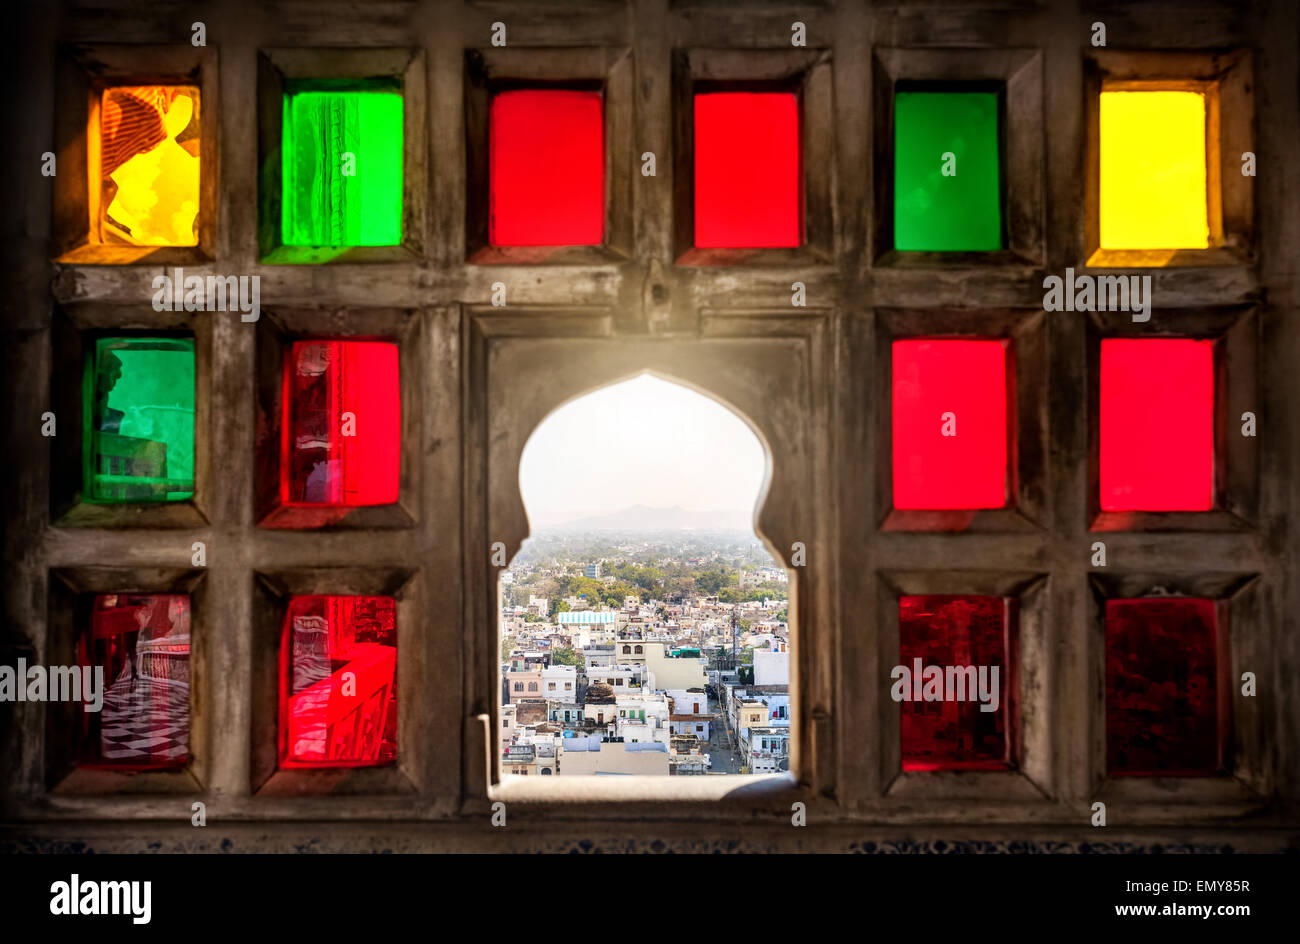 Town view from the colorful mosaic window in City Palace museum of Udaipur, Rajasthan, India - Stock Image